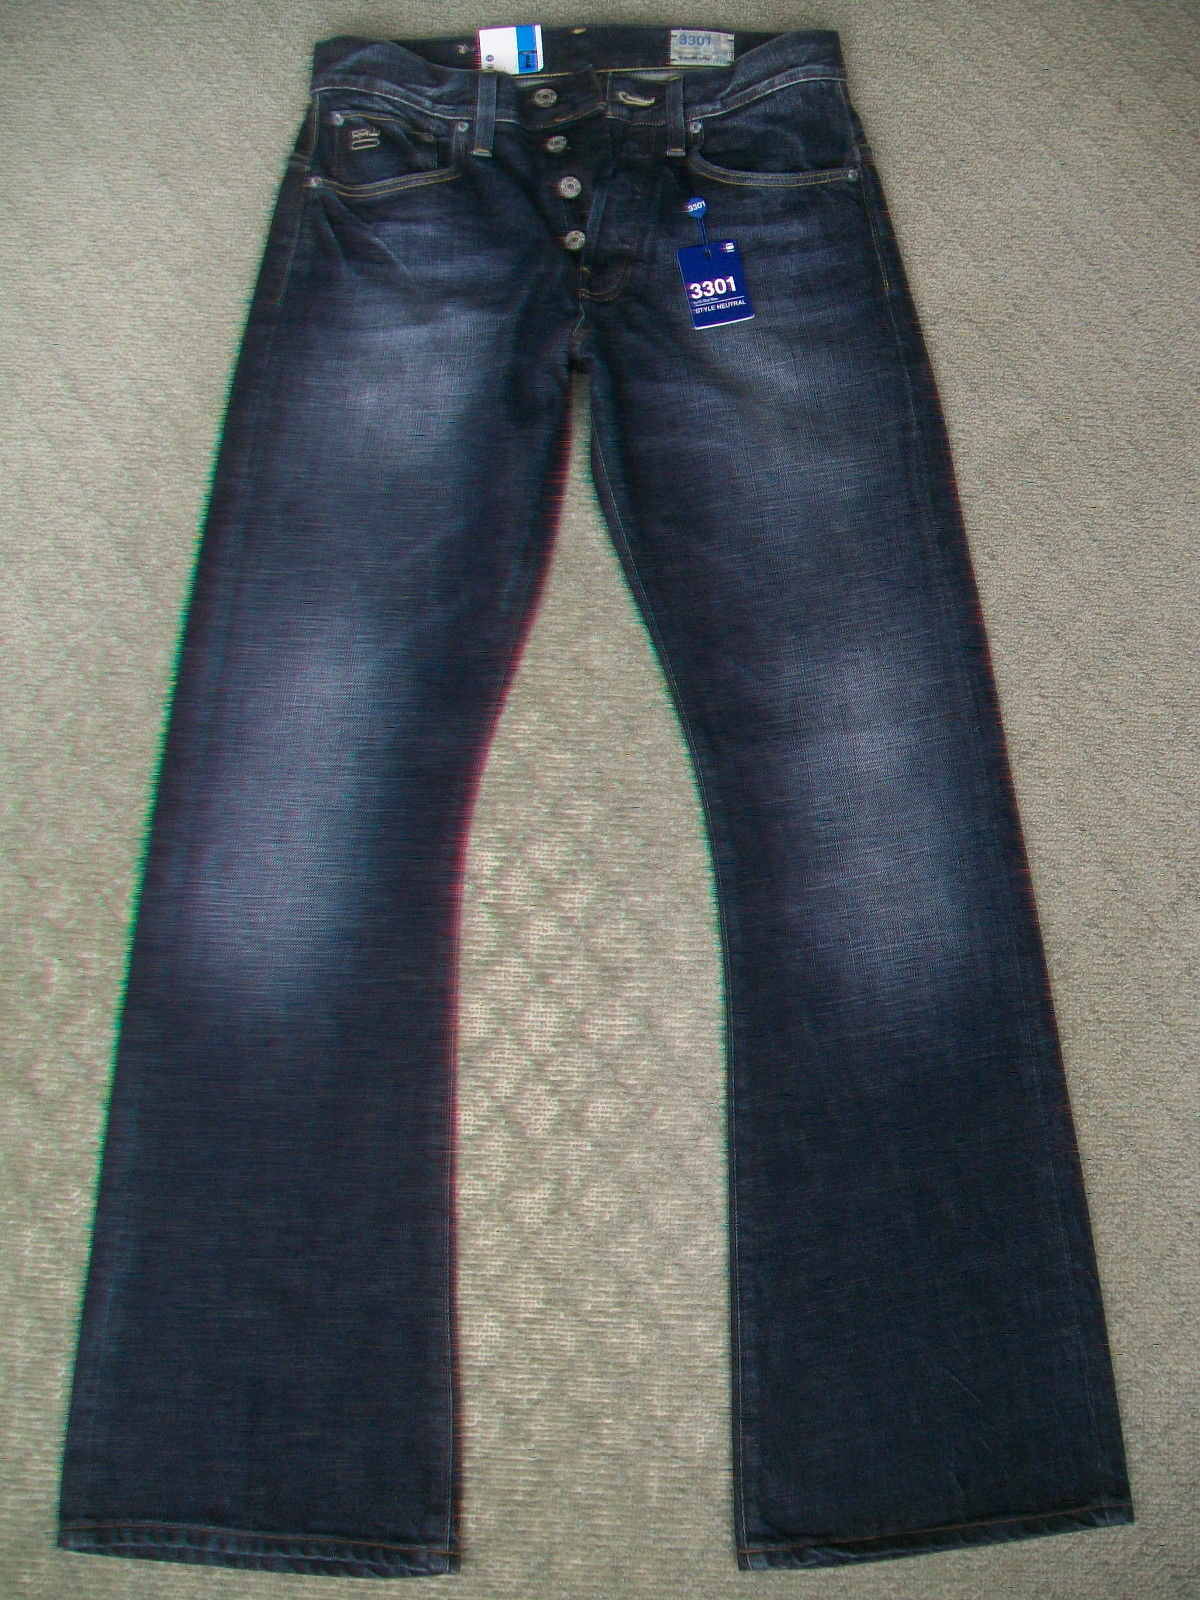 MENS G STAR '3301 BOOT' JEANS - BNWT - SIZE 28 29 30 31